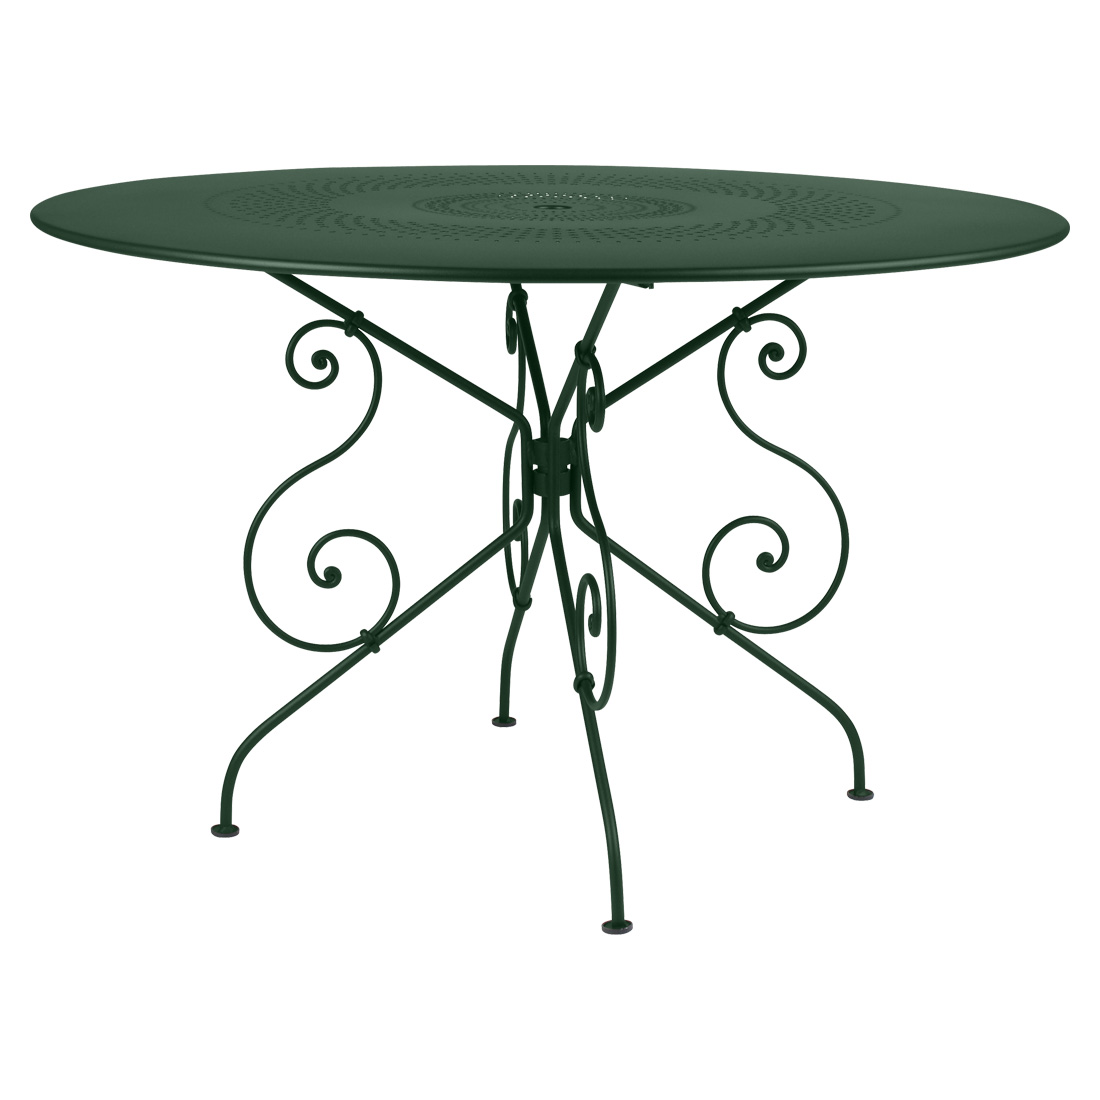 1900 Table 117cm - Cedar Green